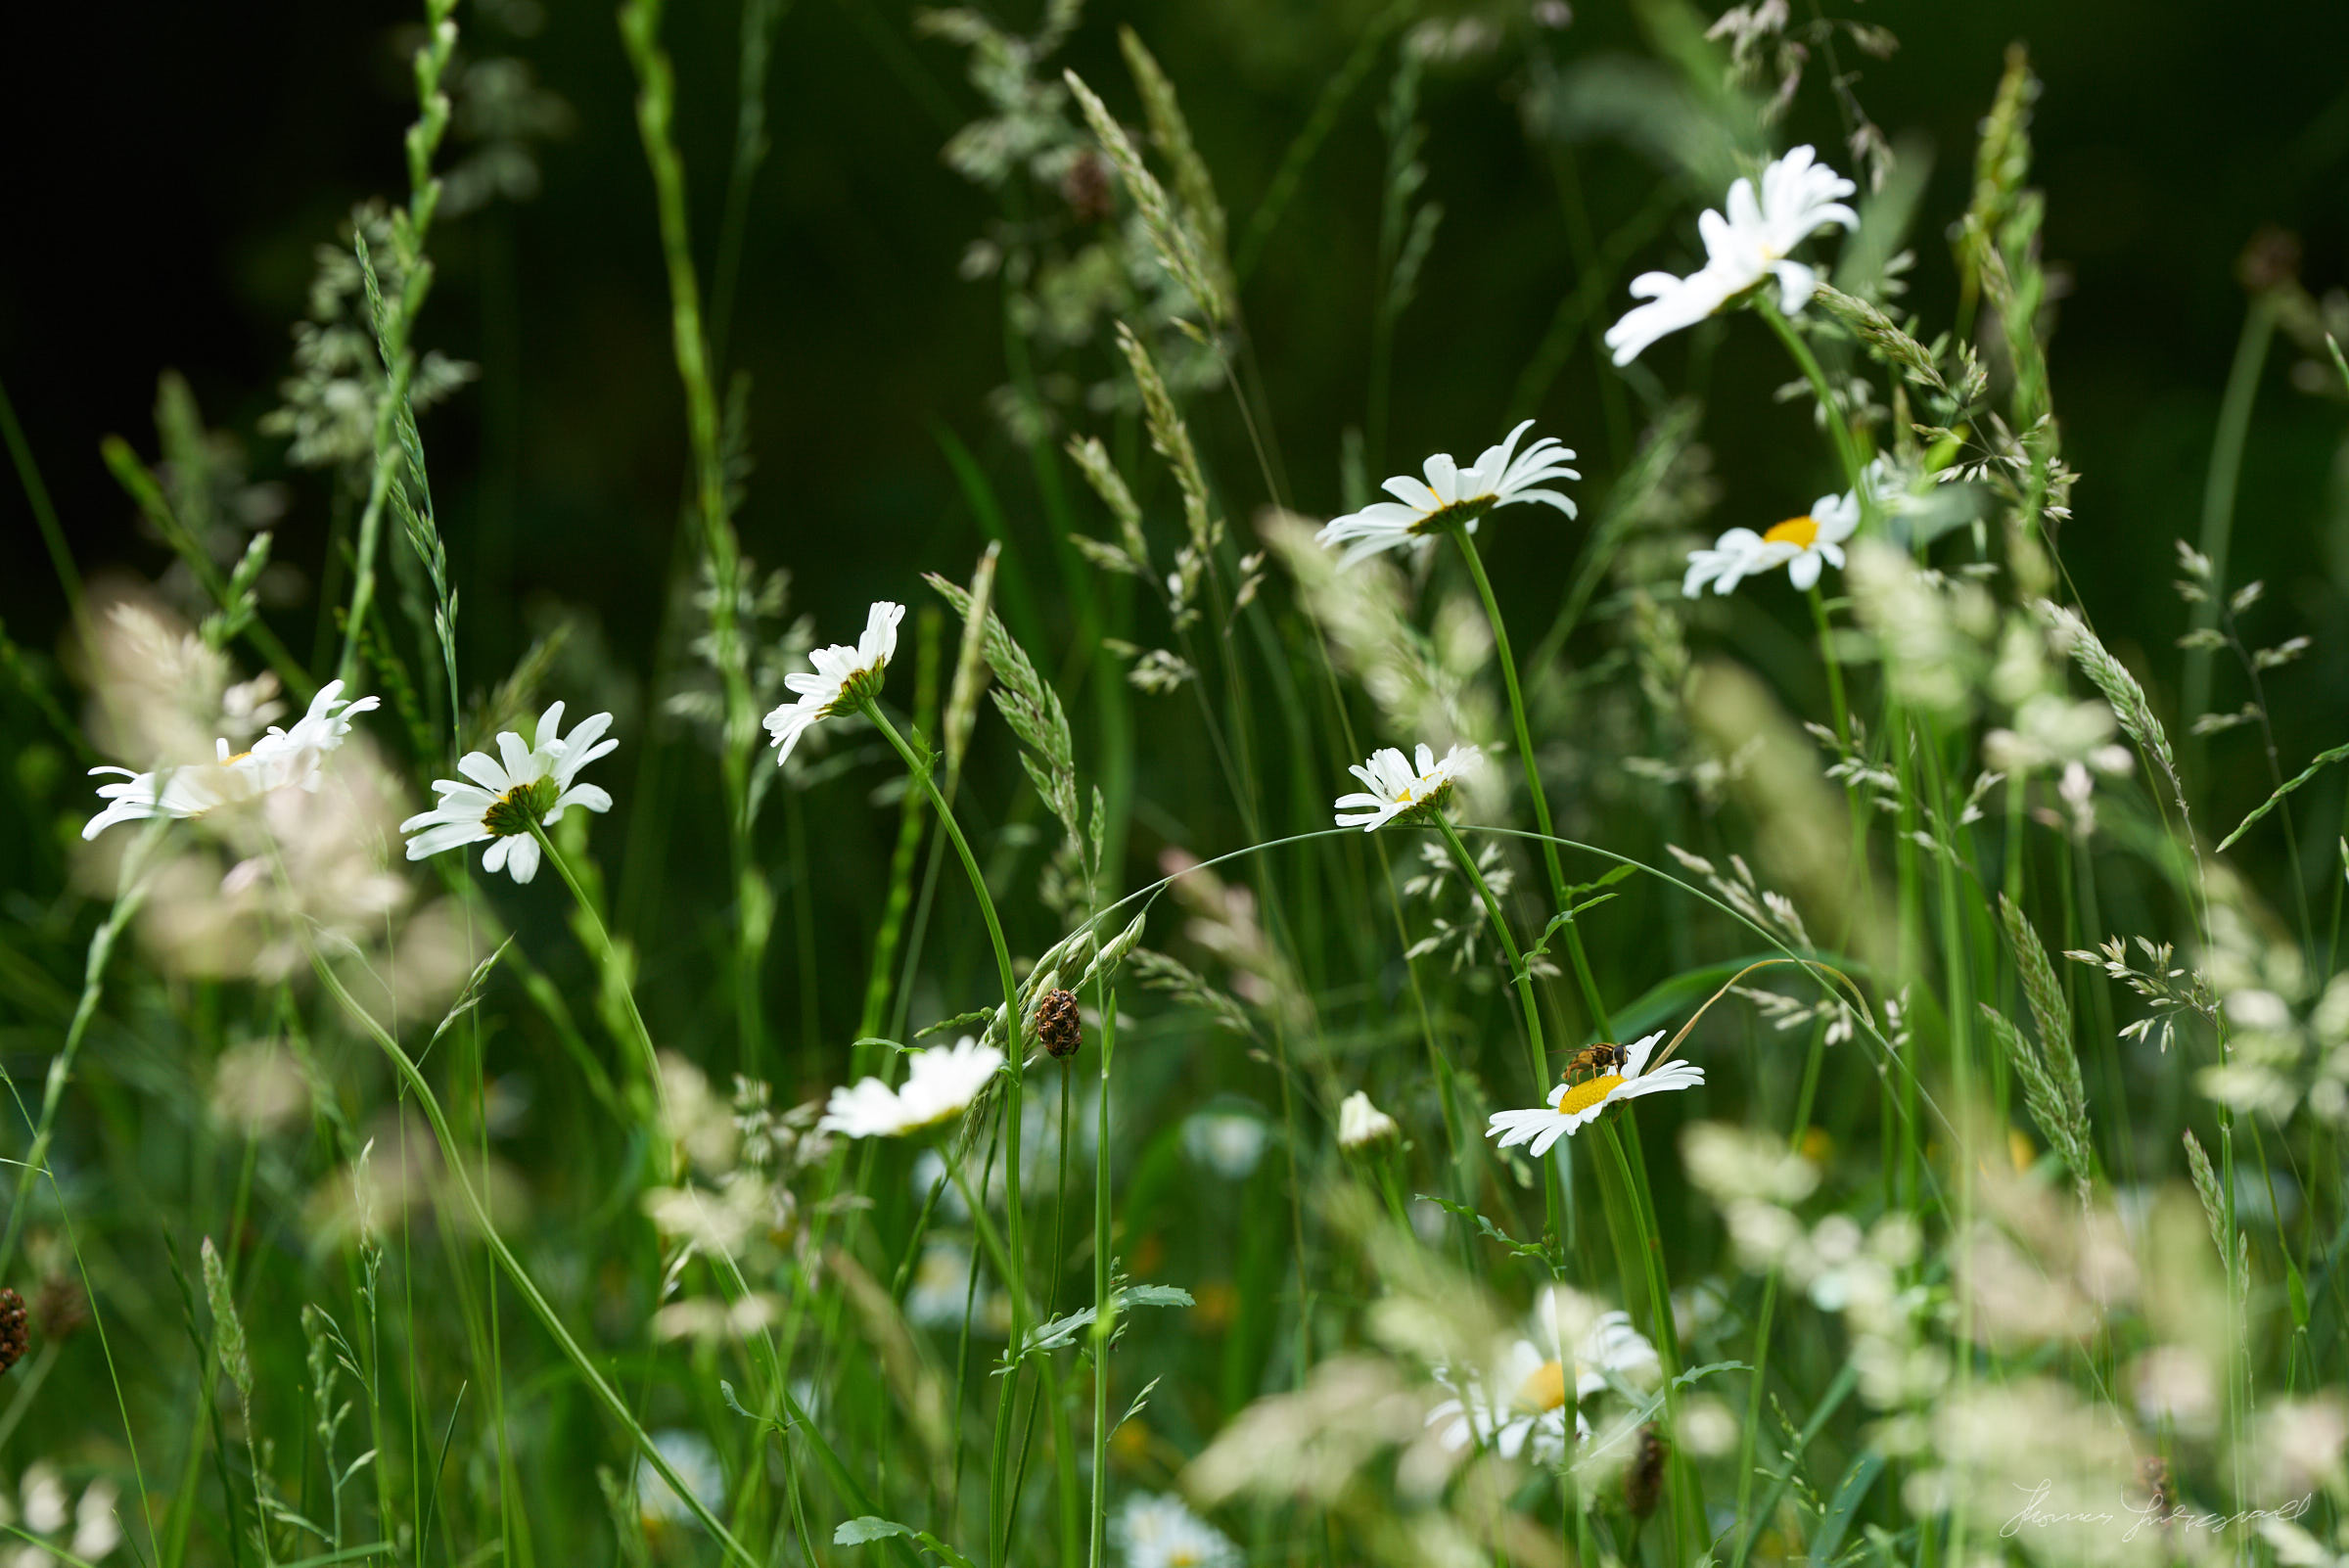 A close up of large white flower daisies in the long summer grass